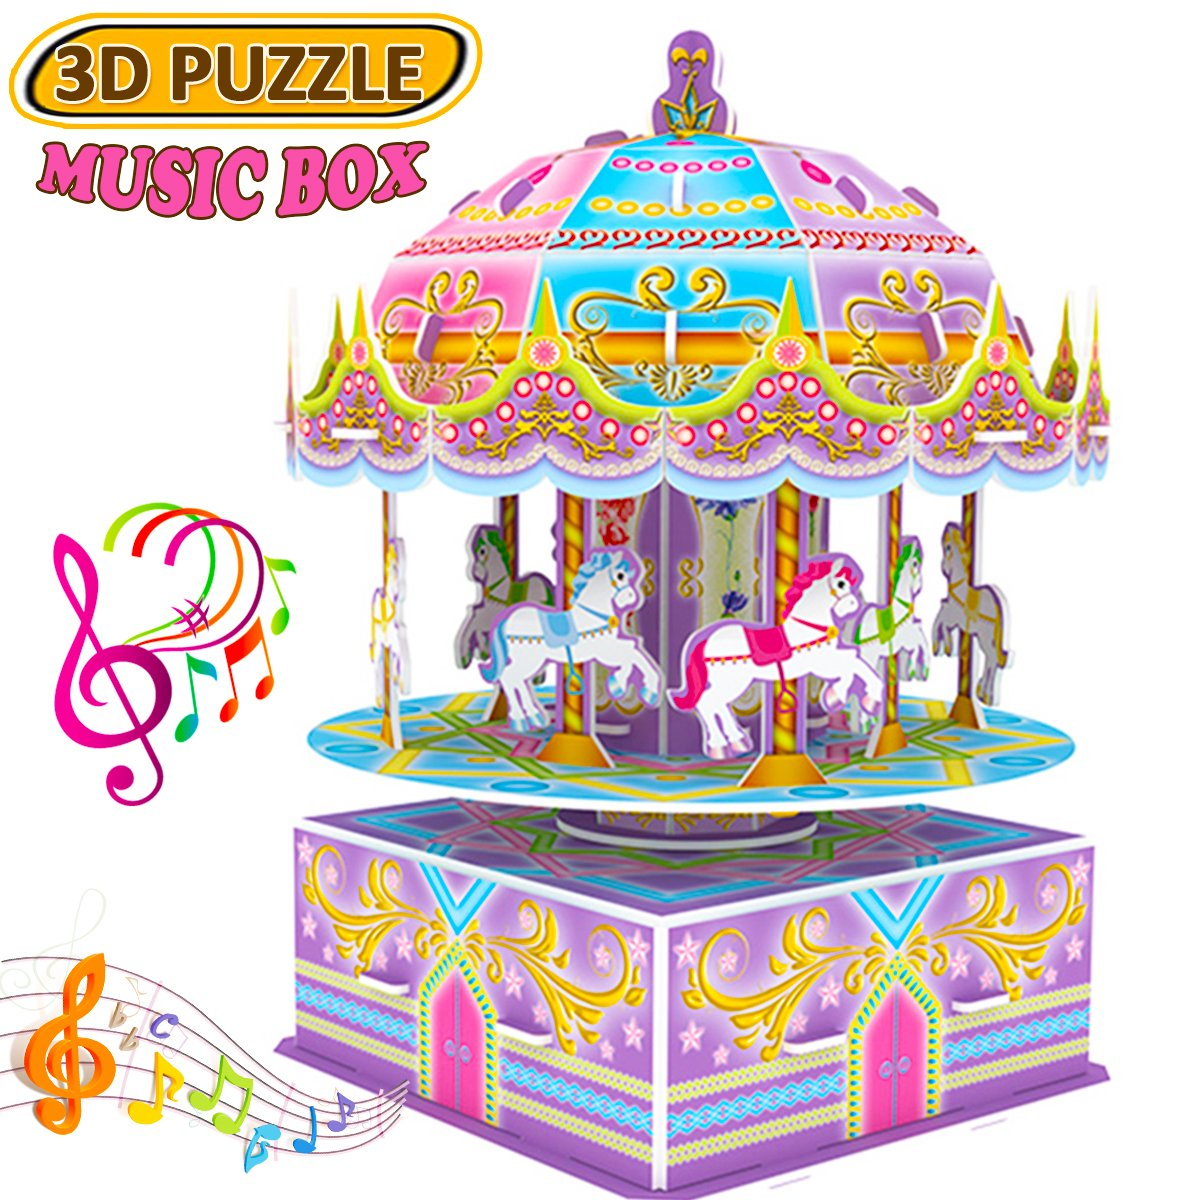 GBD 3D Carousel Puzzle for Kids,Whirligig Jigsaw Music Box DIY Building Model Brain Teasers Early Learning Educational Game for Kids Girls Boys Toys Birthday Summer Holiday Gifts-29 Pieces Review